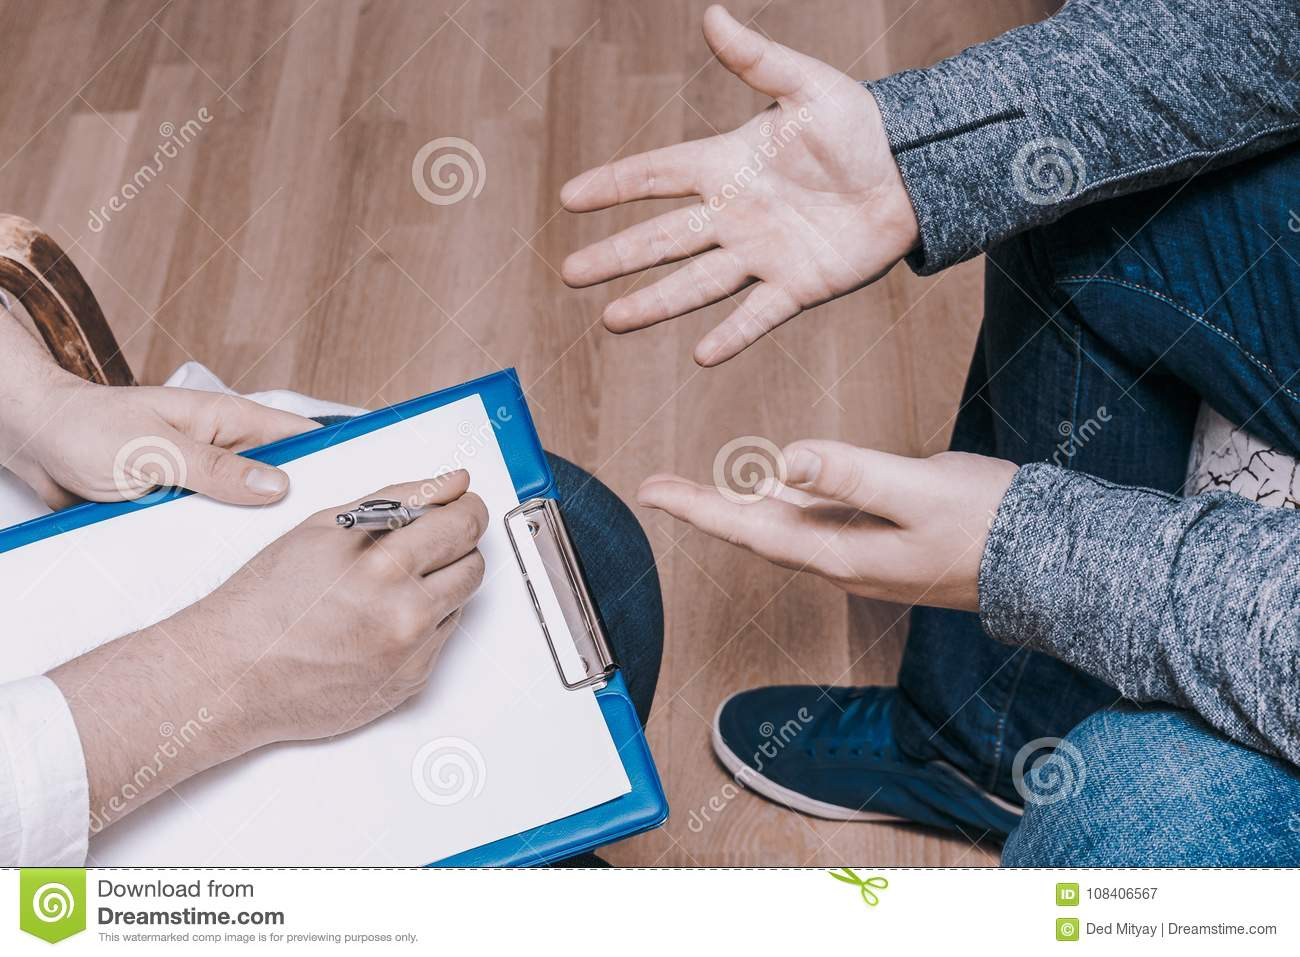 Psychologist consulting concept. Doctor consult in psychotherapy session or counsel diagnosis mental health of male patient